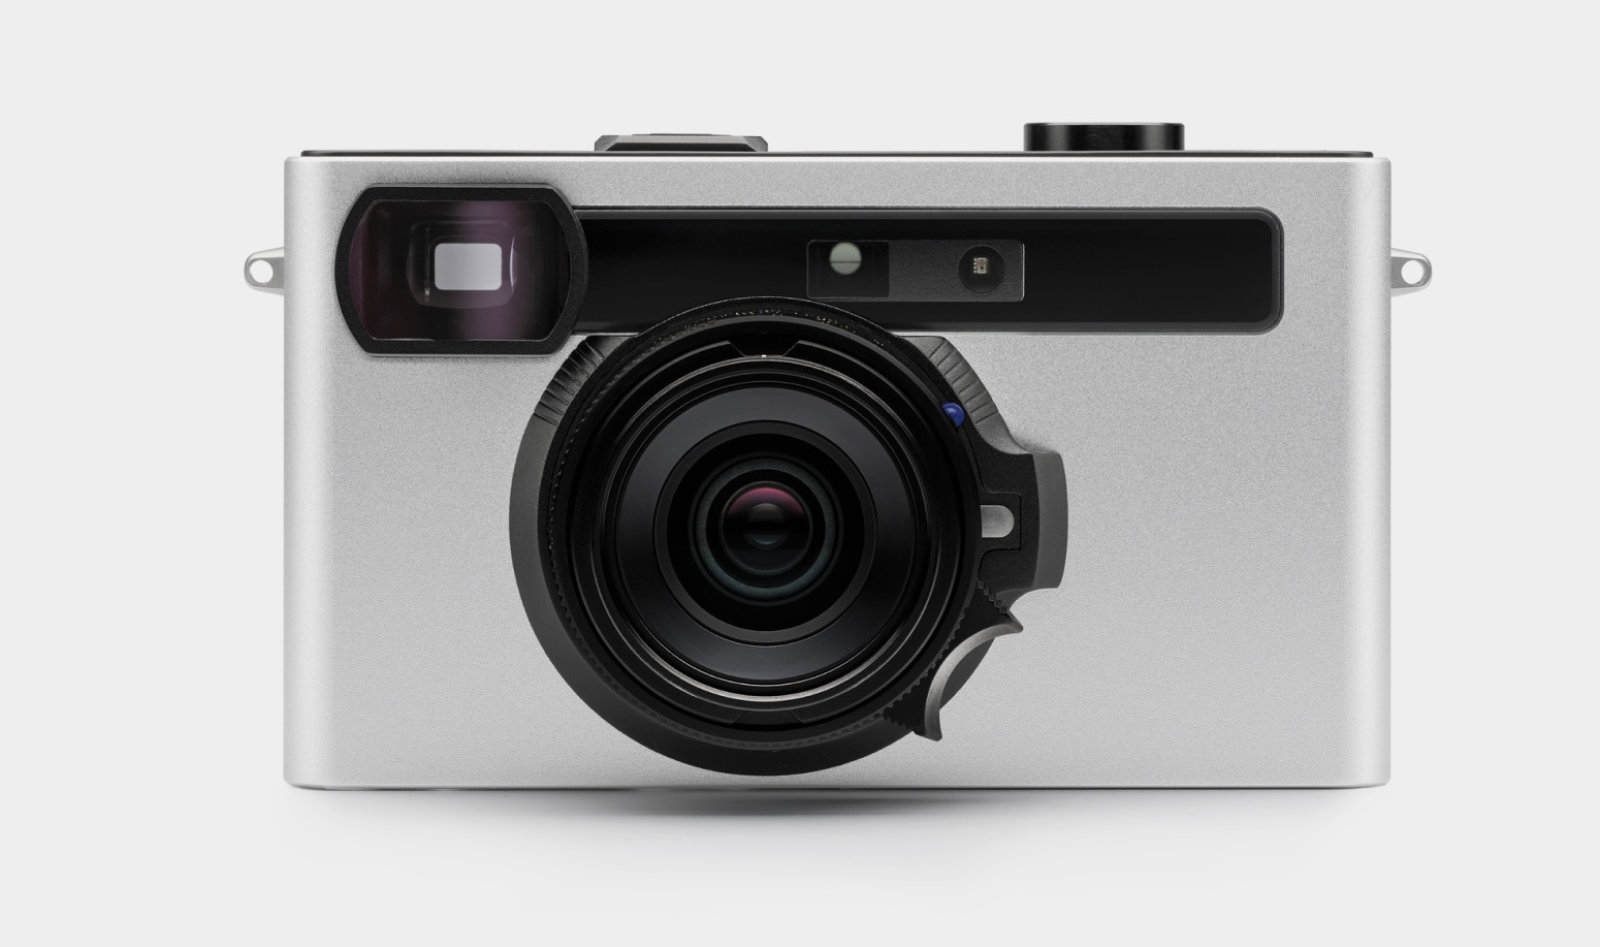 Offbeat: Pixii is a smartphone-centric rangefinder camera with a